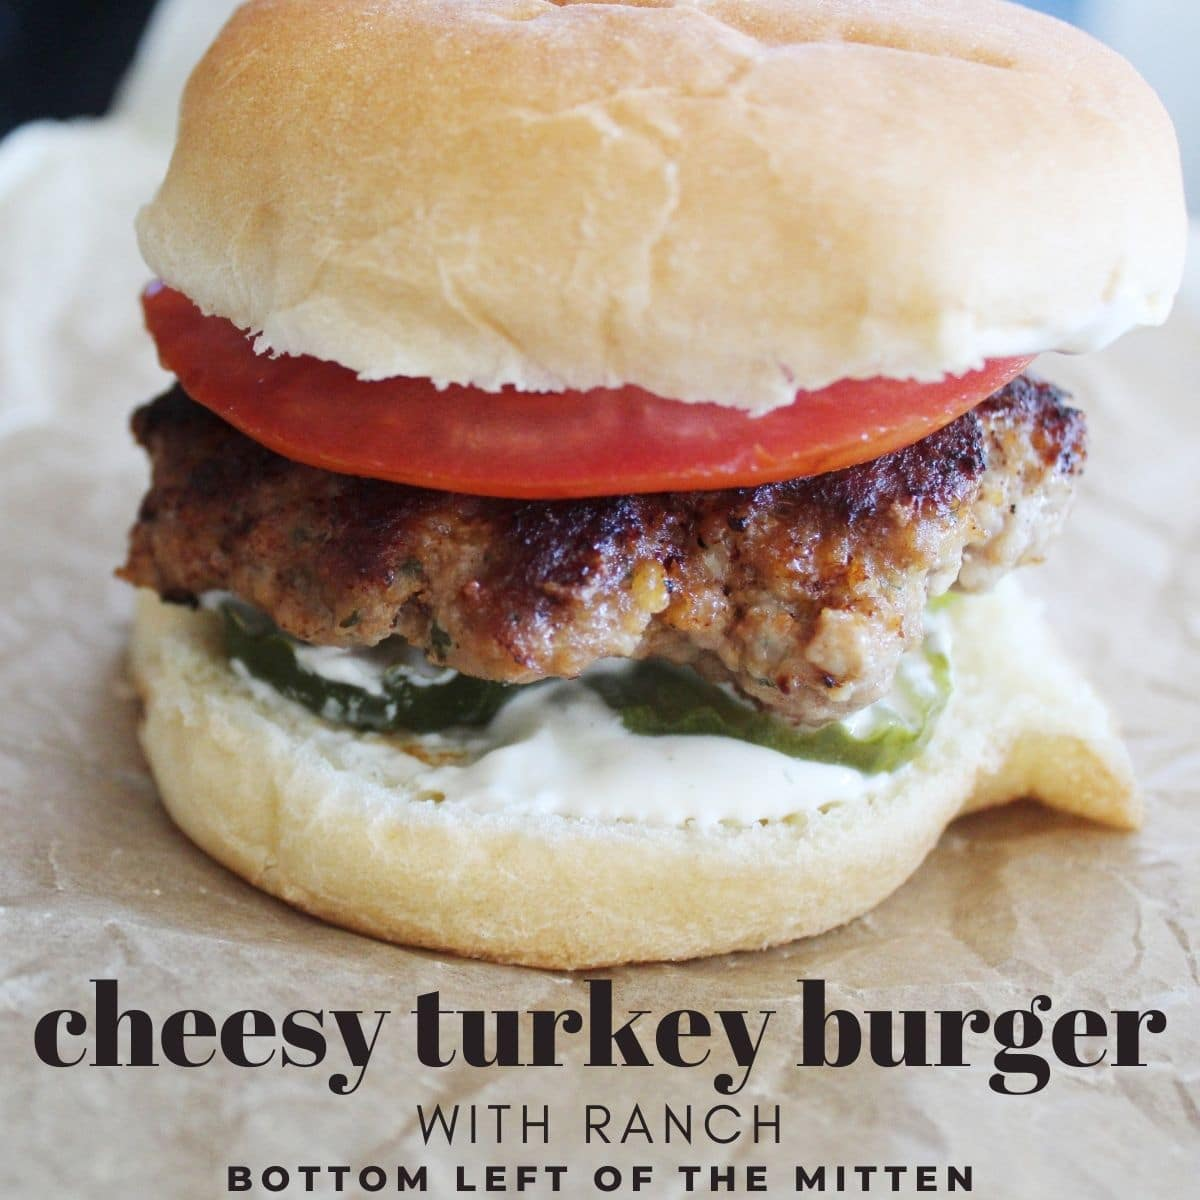 zoomed in shot of a cheesy turkey burger on a bun with ranch dressing tomato and pickles with descriptive text overlay.